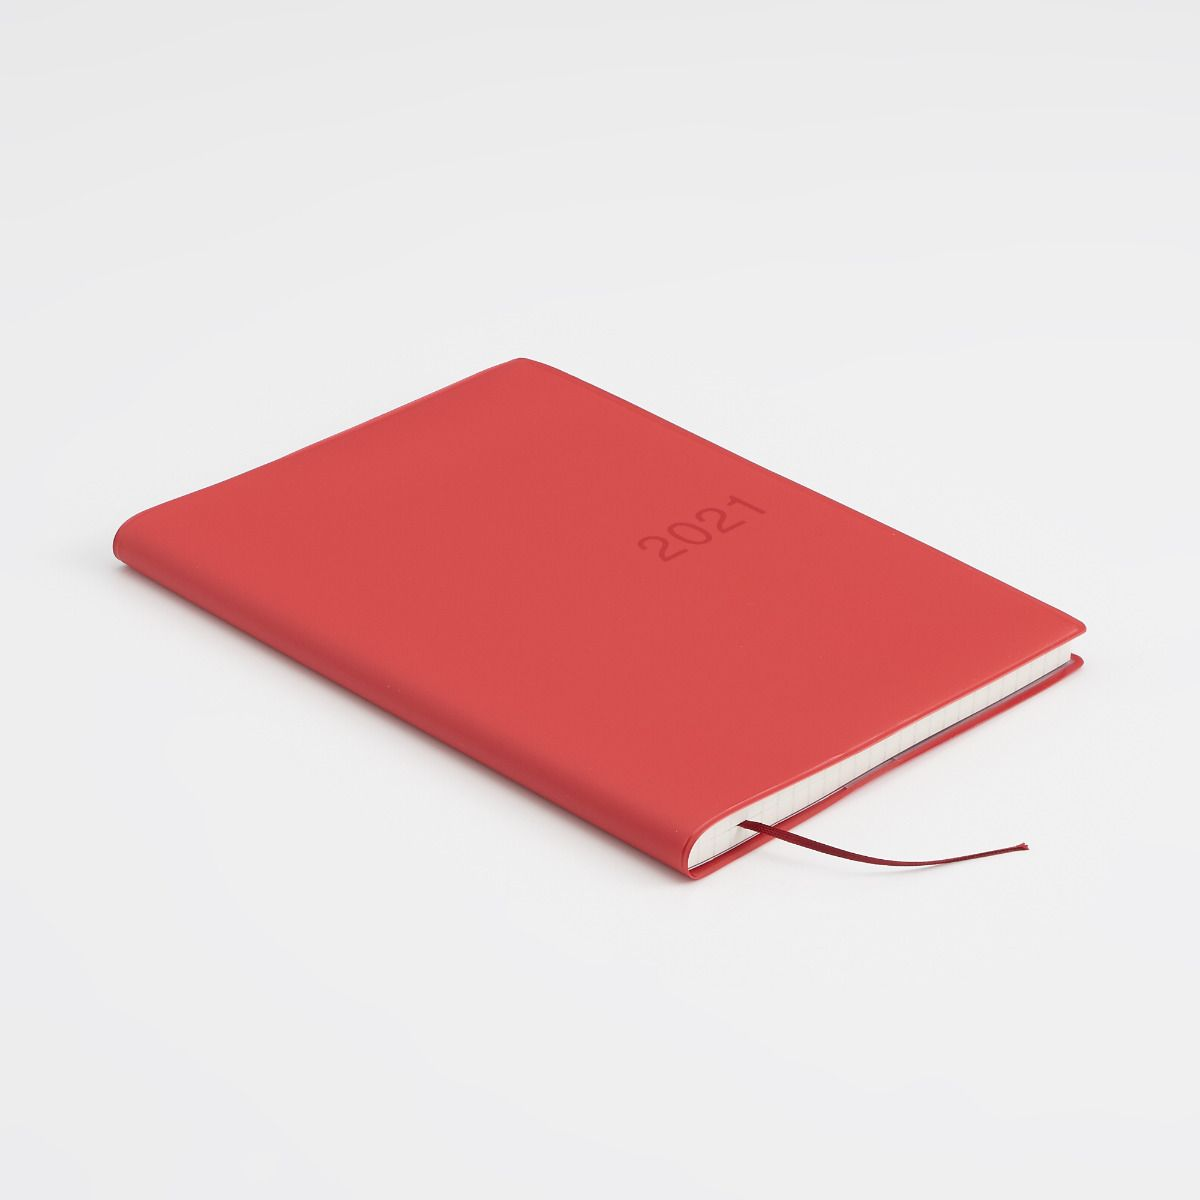 MUJI 2021 Monthly Weekly Yearly Planner RED B6 - USA Seller